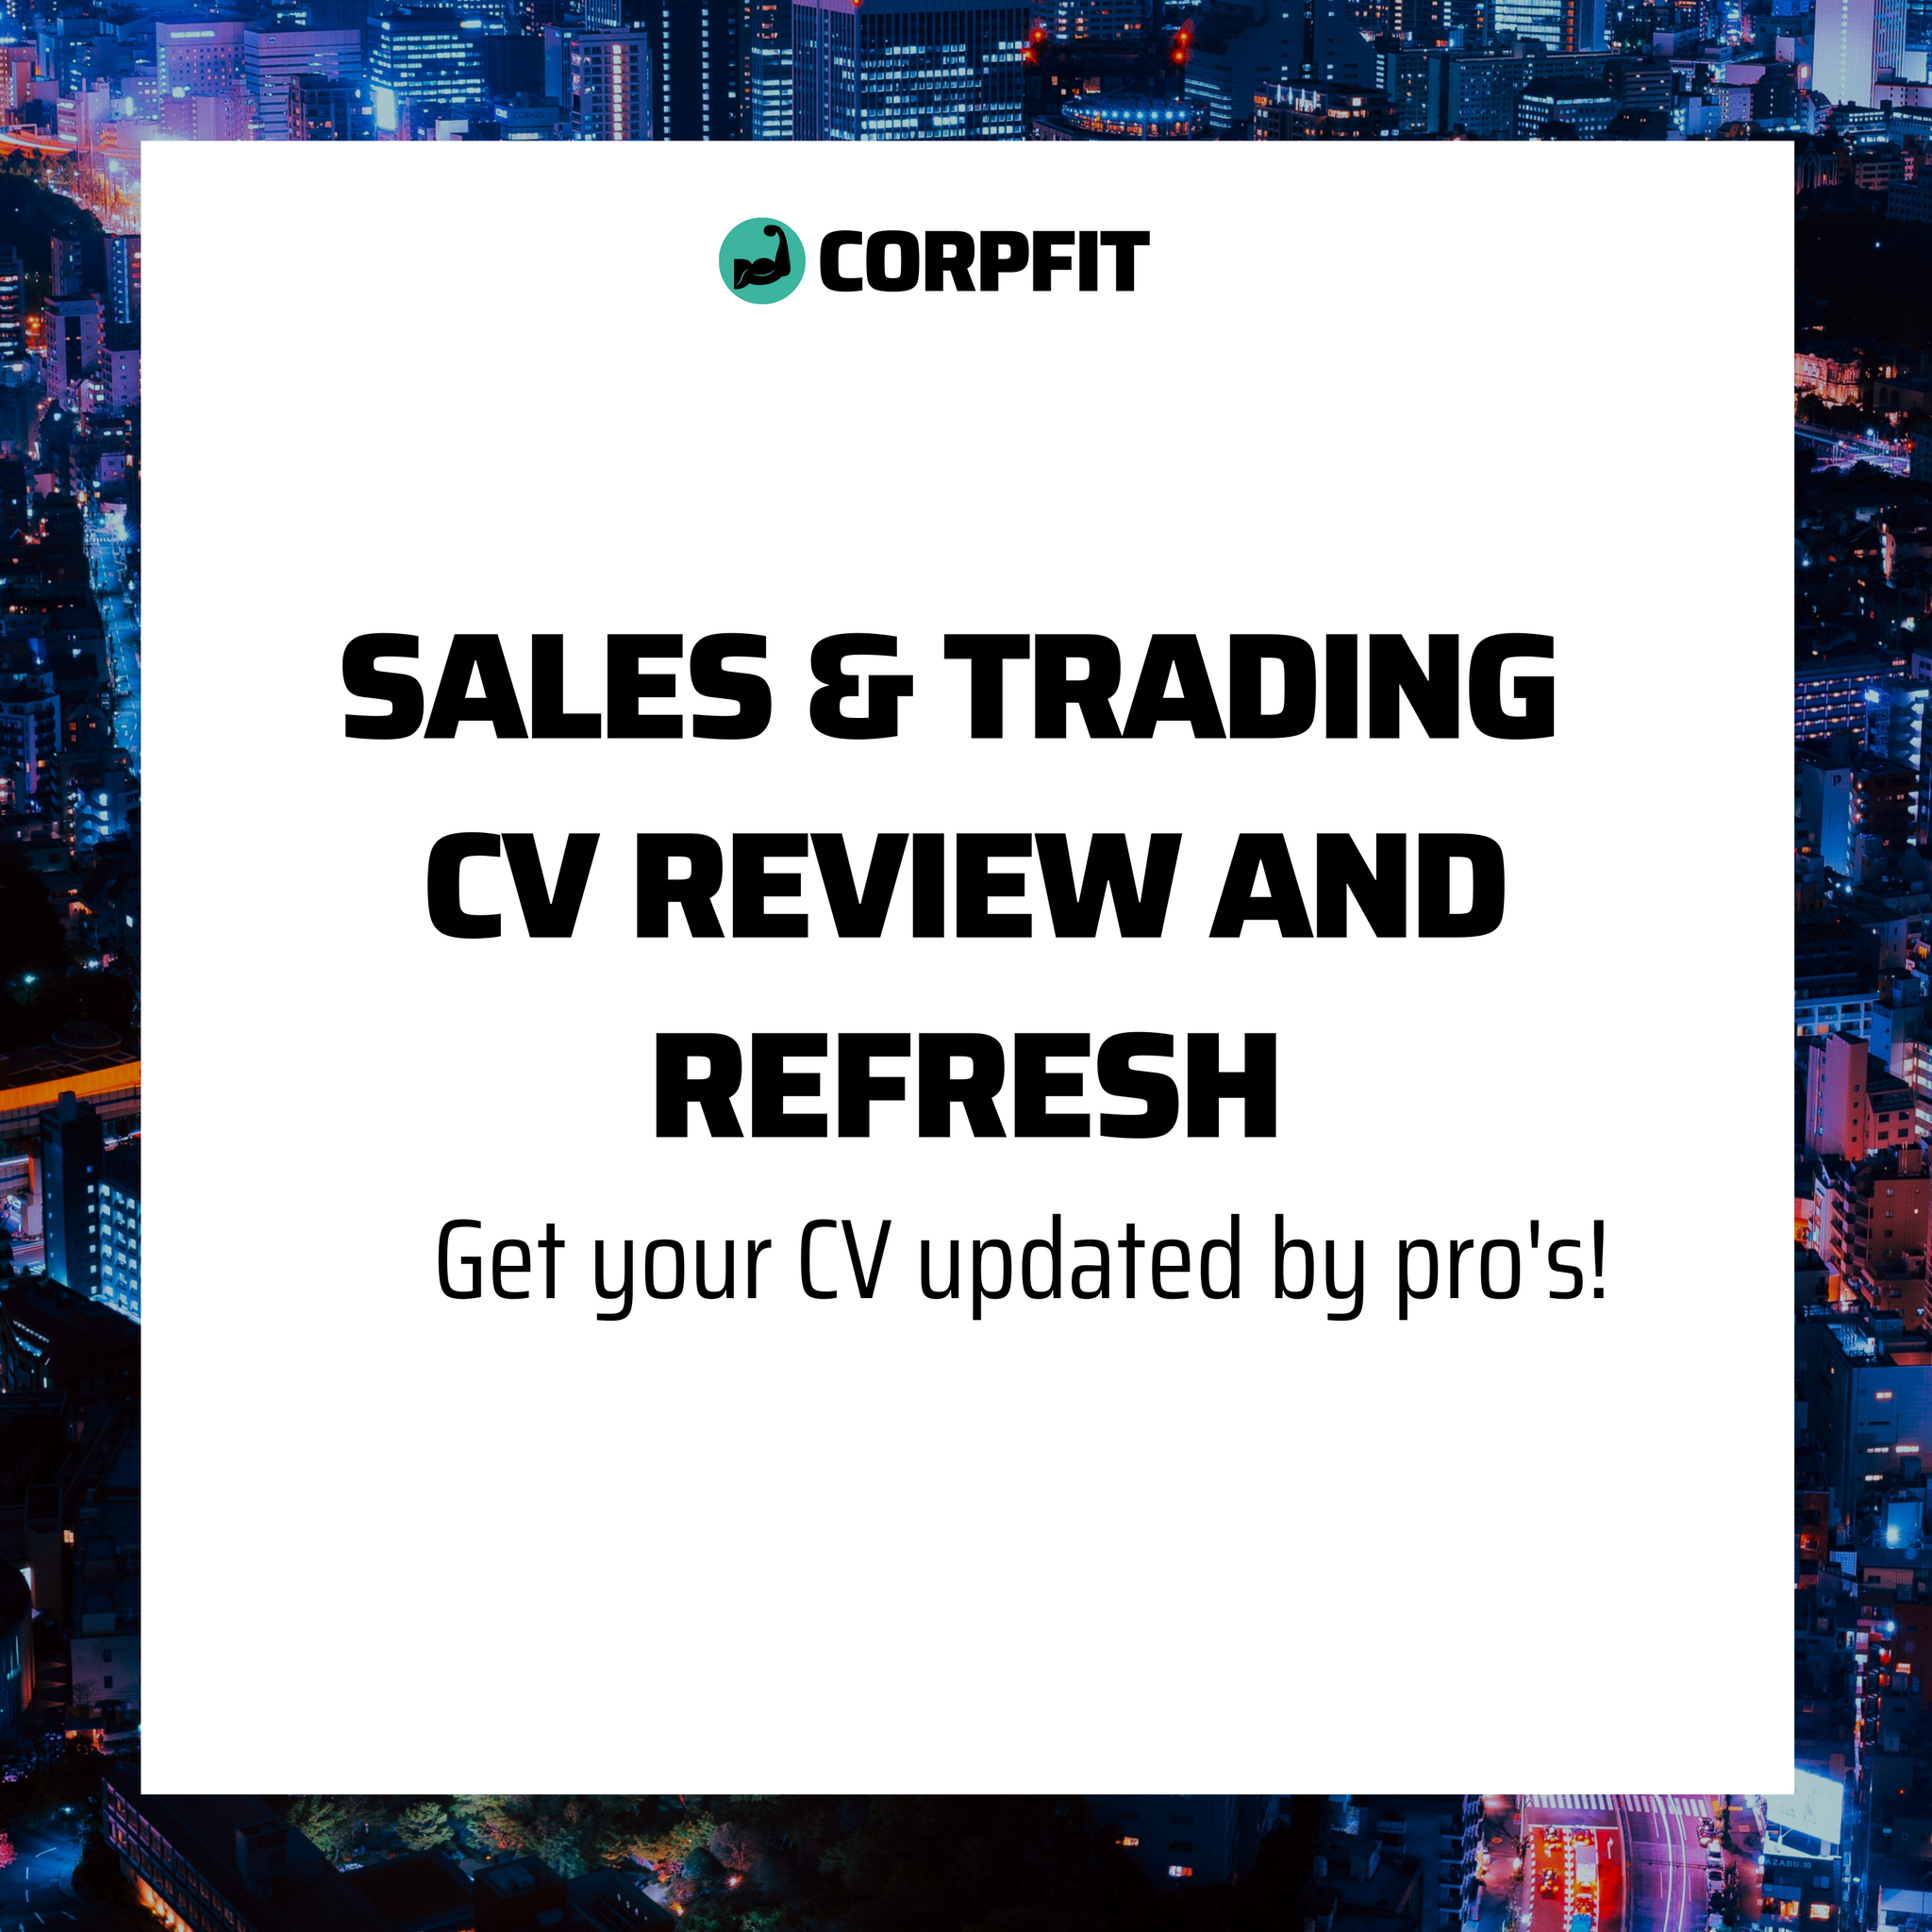 Sales & Trading CV Review and Refresh